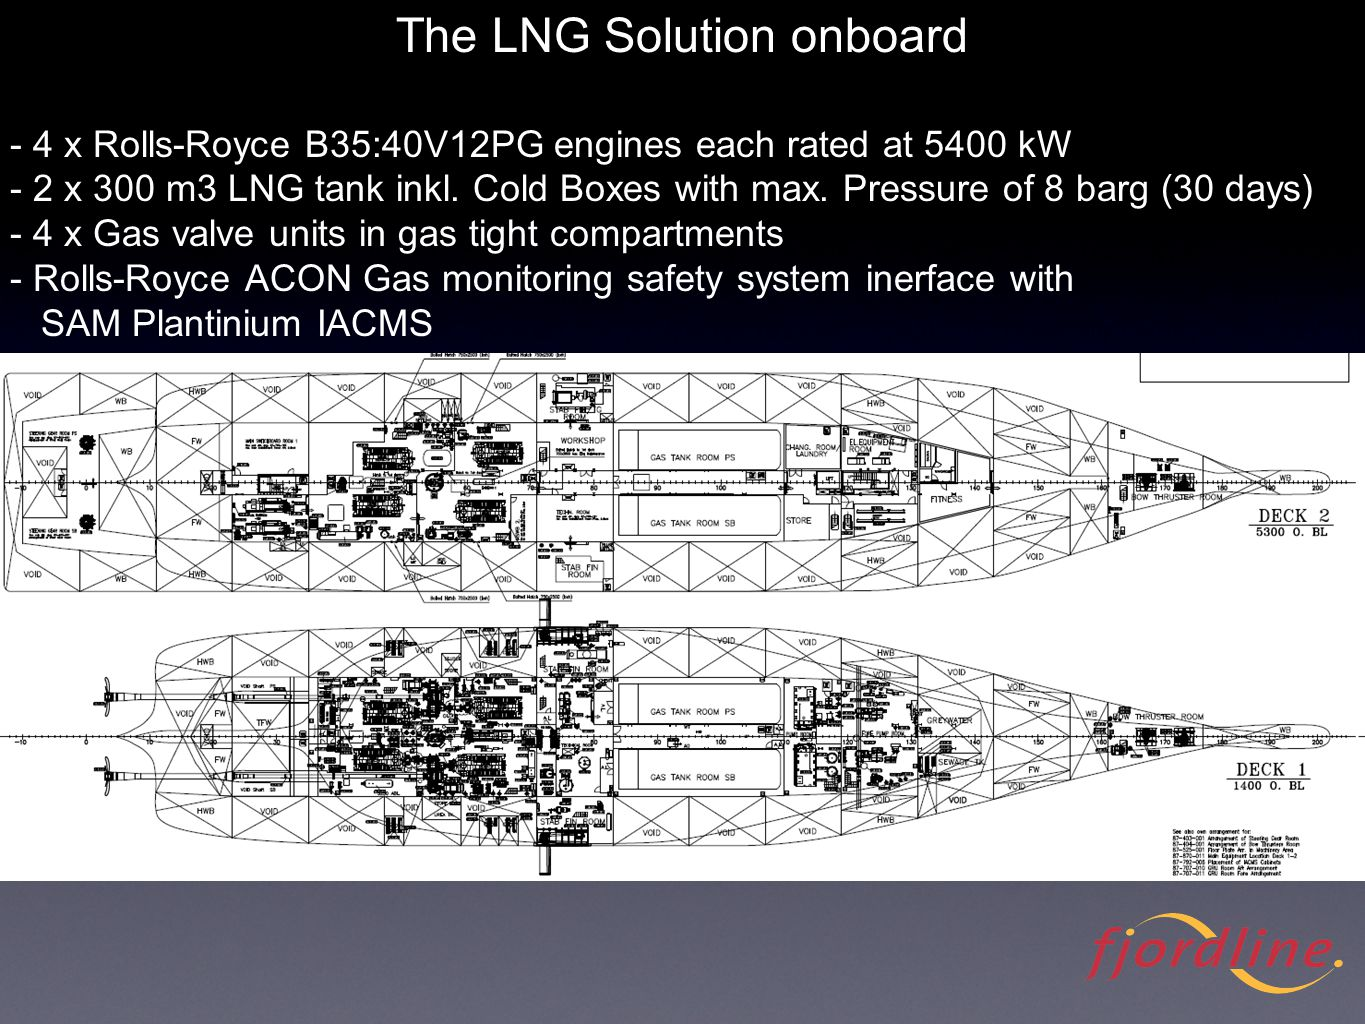 The LNG Solution onboard - 4 x Rolls-Royce B35:40V12PG engines each rated at 5400 kW - 2 x 300 m3 LNG tank inkl.